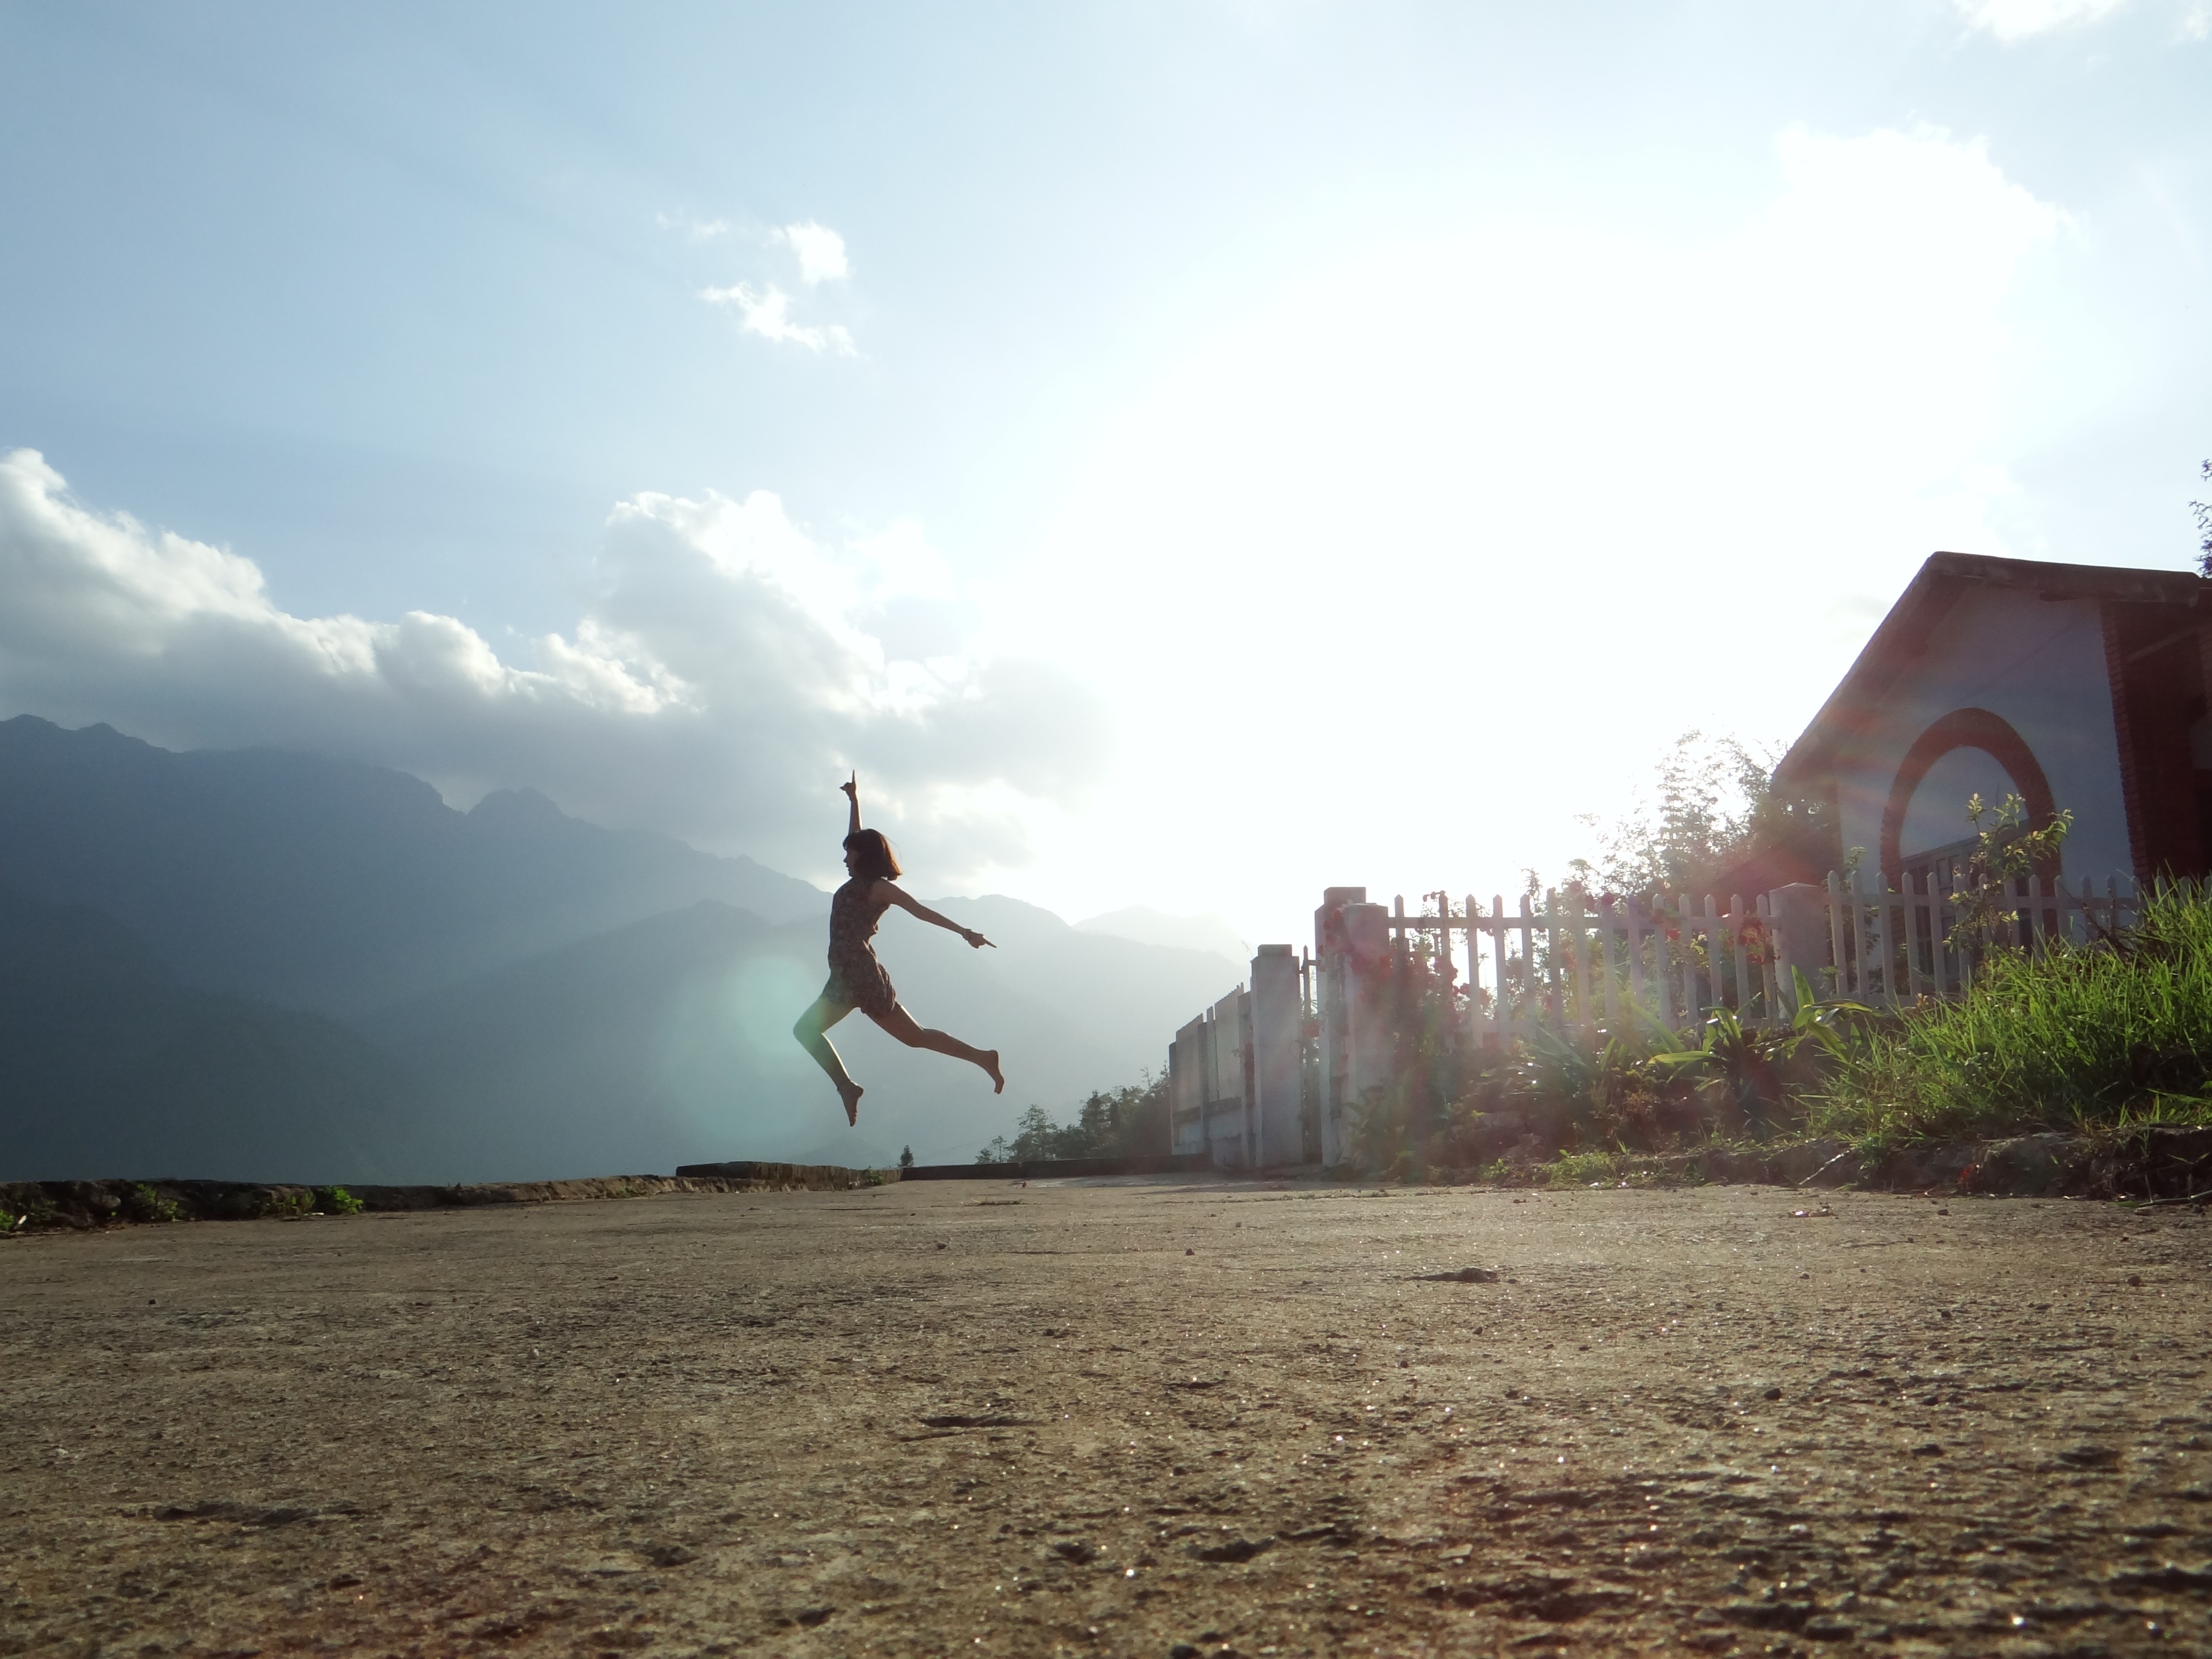 Jumping with joy photo